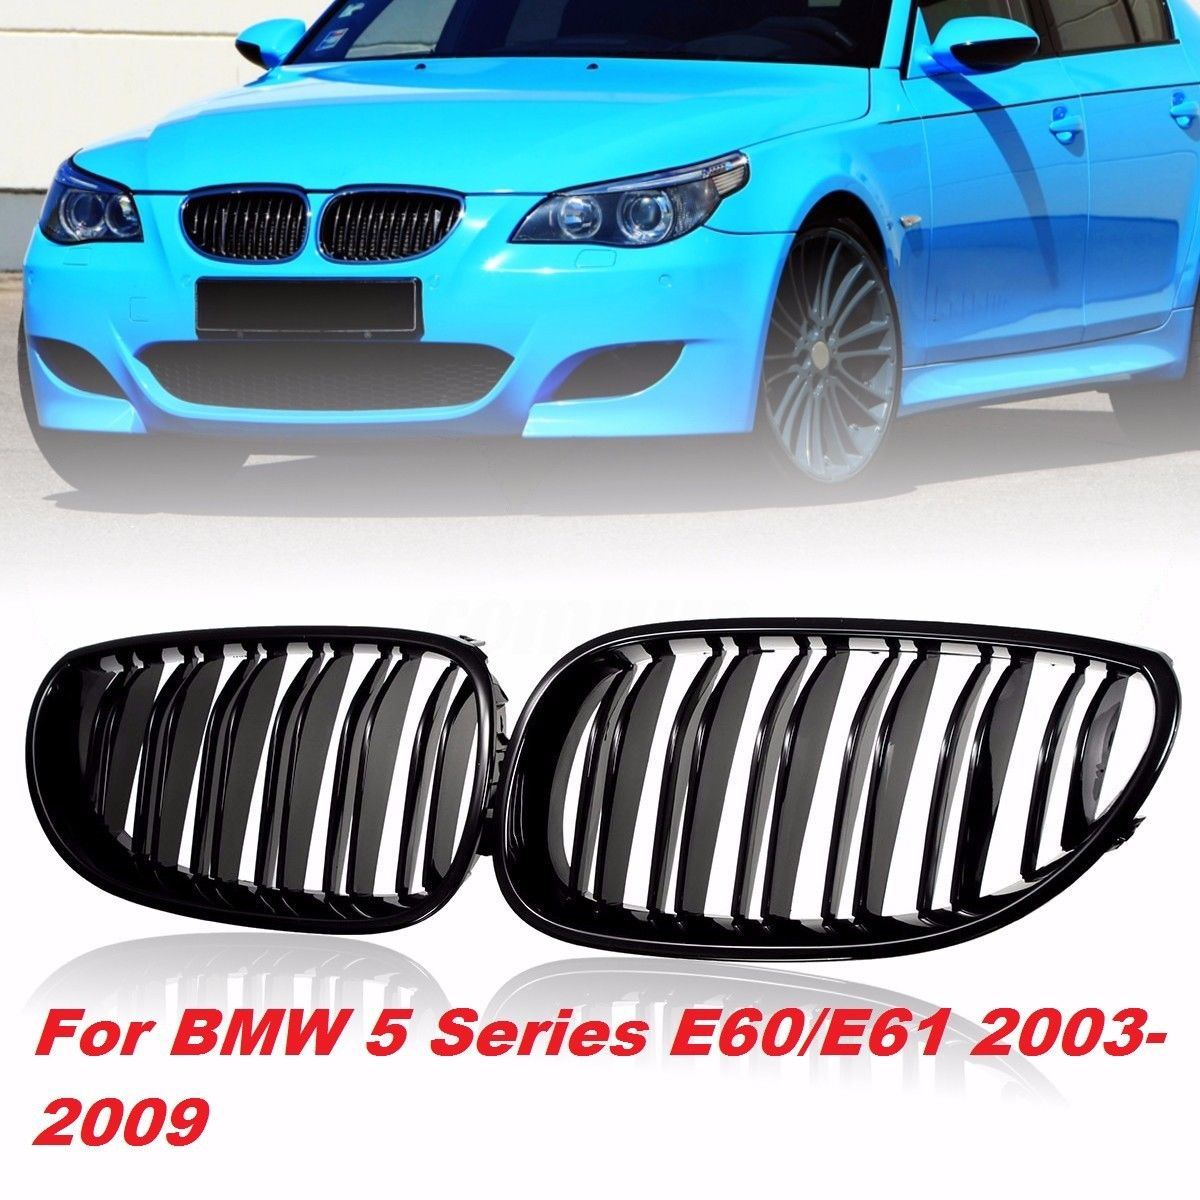 2pcs Front Kidney Grilles Grill Gloss Black ABS Double Line Grille For BMW E60 E61 5 SERIES 2003-20092pcs Front Kidney Grilles Grill Gloss Black ABS Double Line Grille For BMW E60 E61 5 SERIES 2003-2009